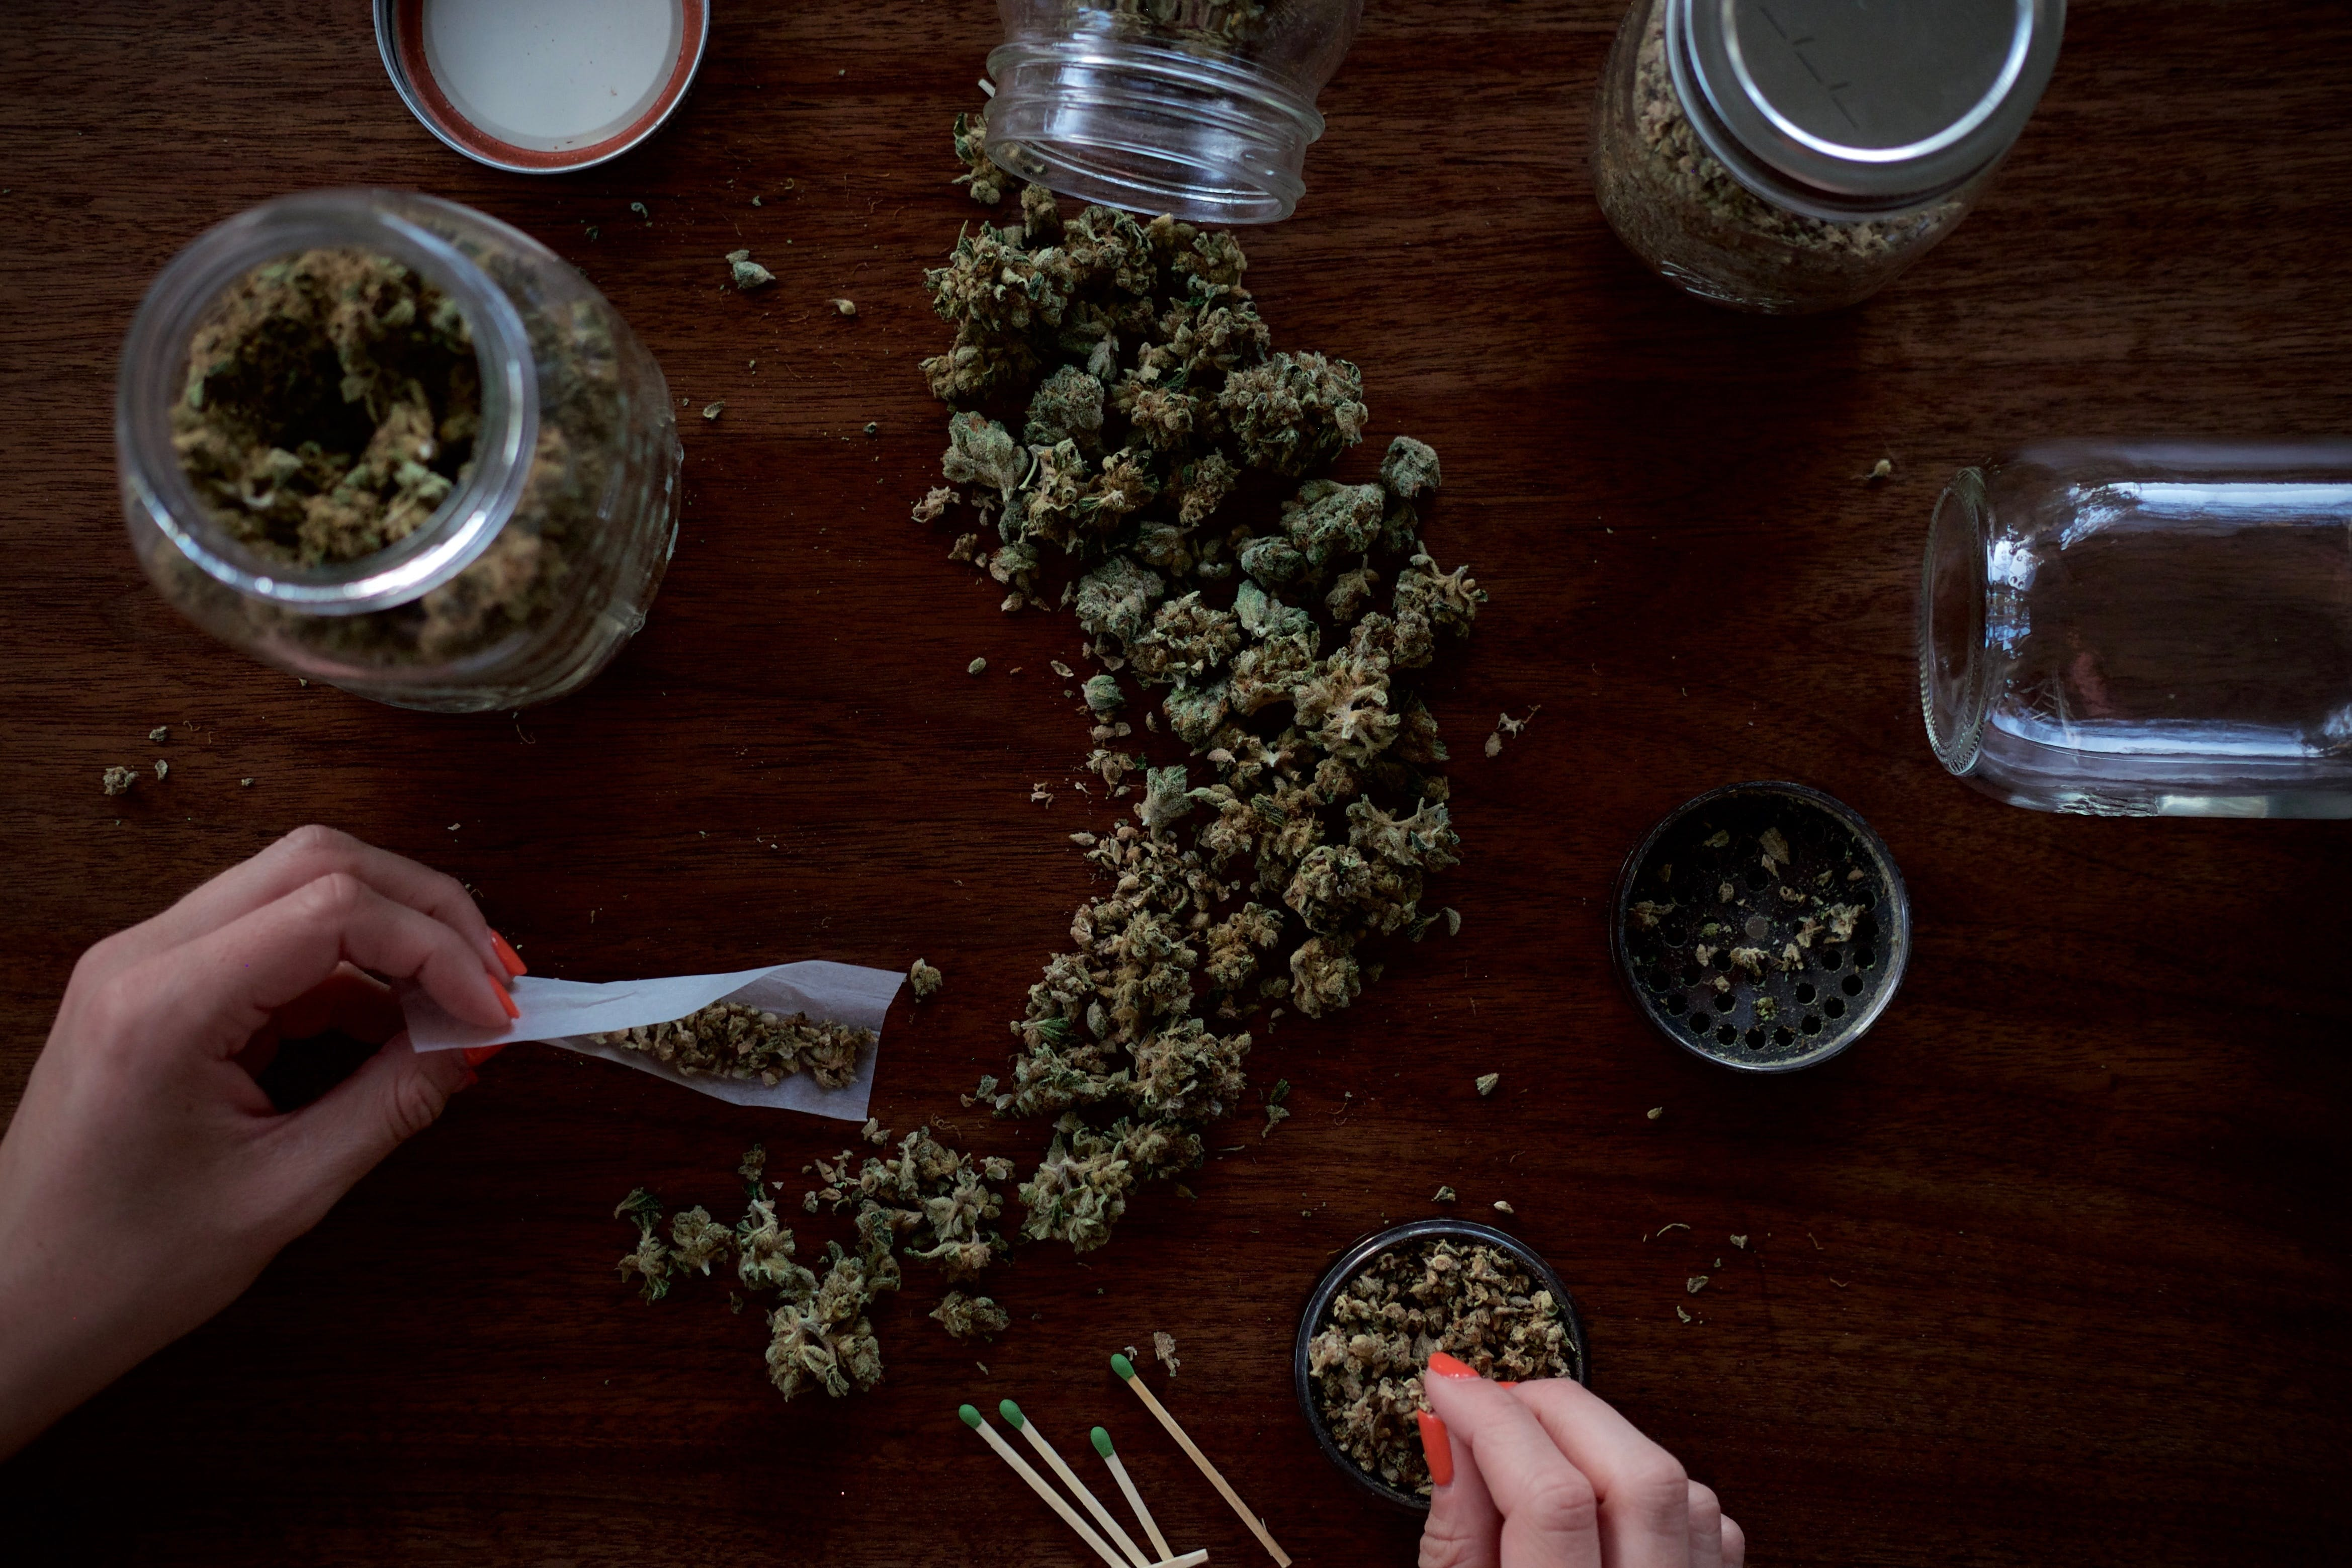 Top down image of dry cannabis flower, rolling a joint